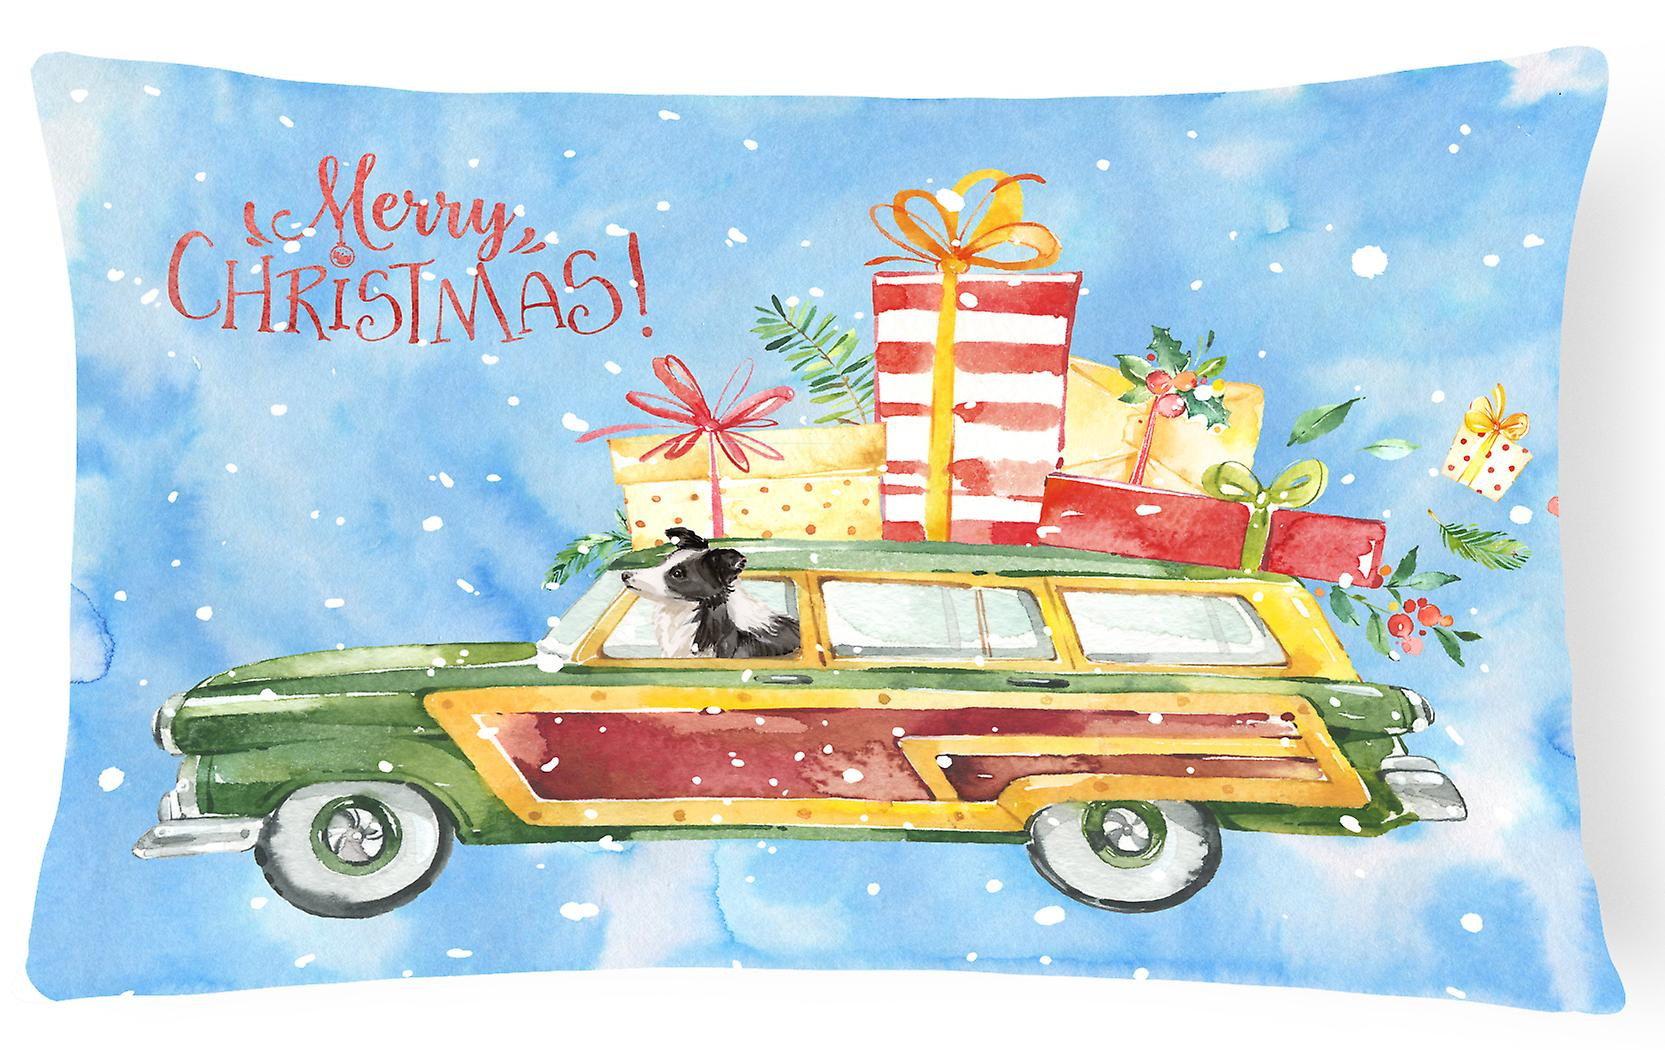 Canvas Collie Pillow Border Fabric Decorative Merry Christmas CxBrode